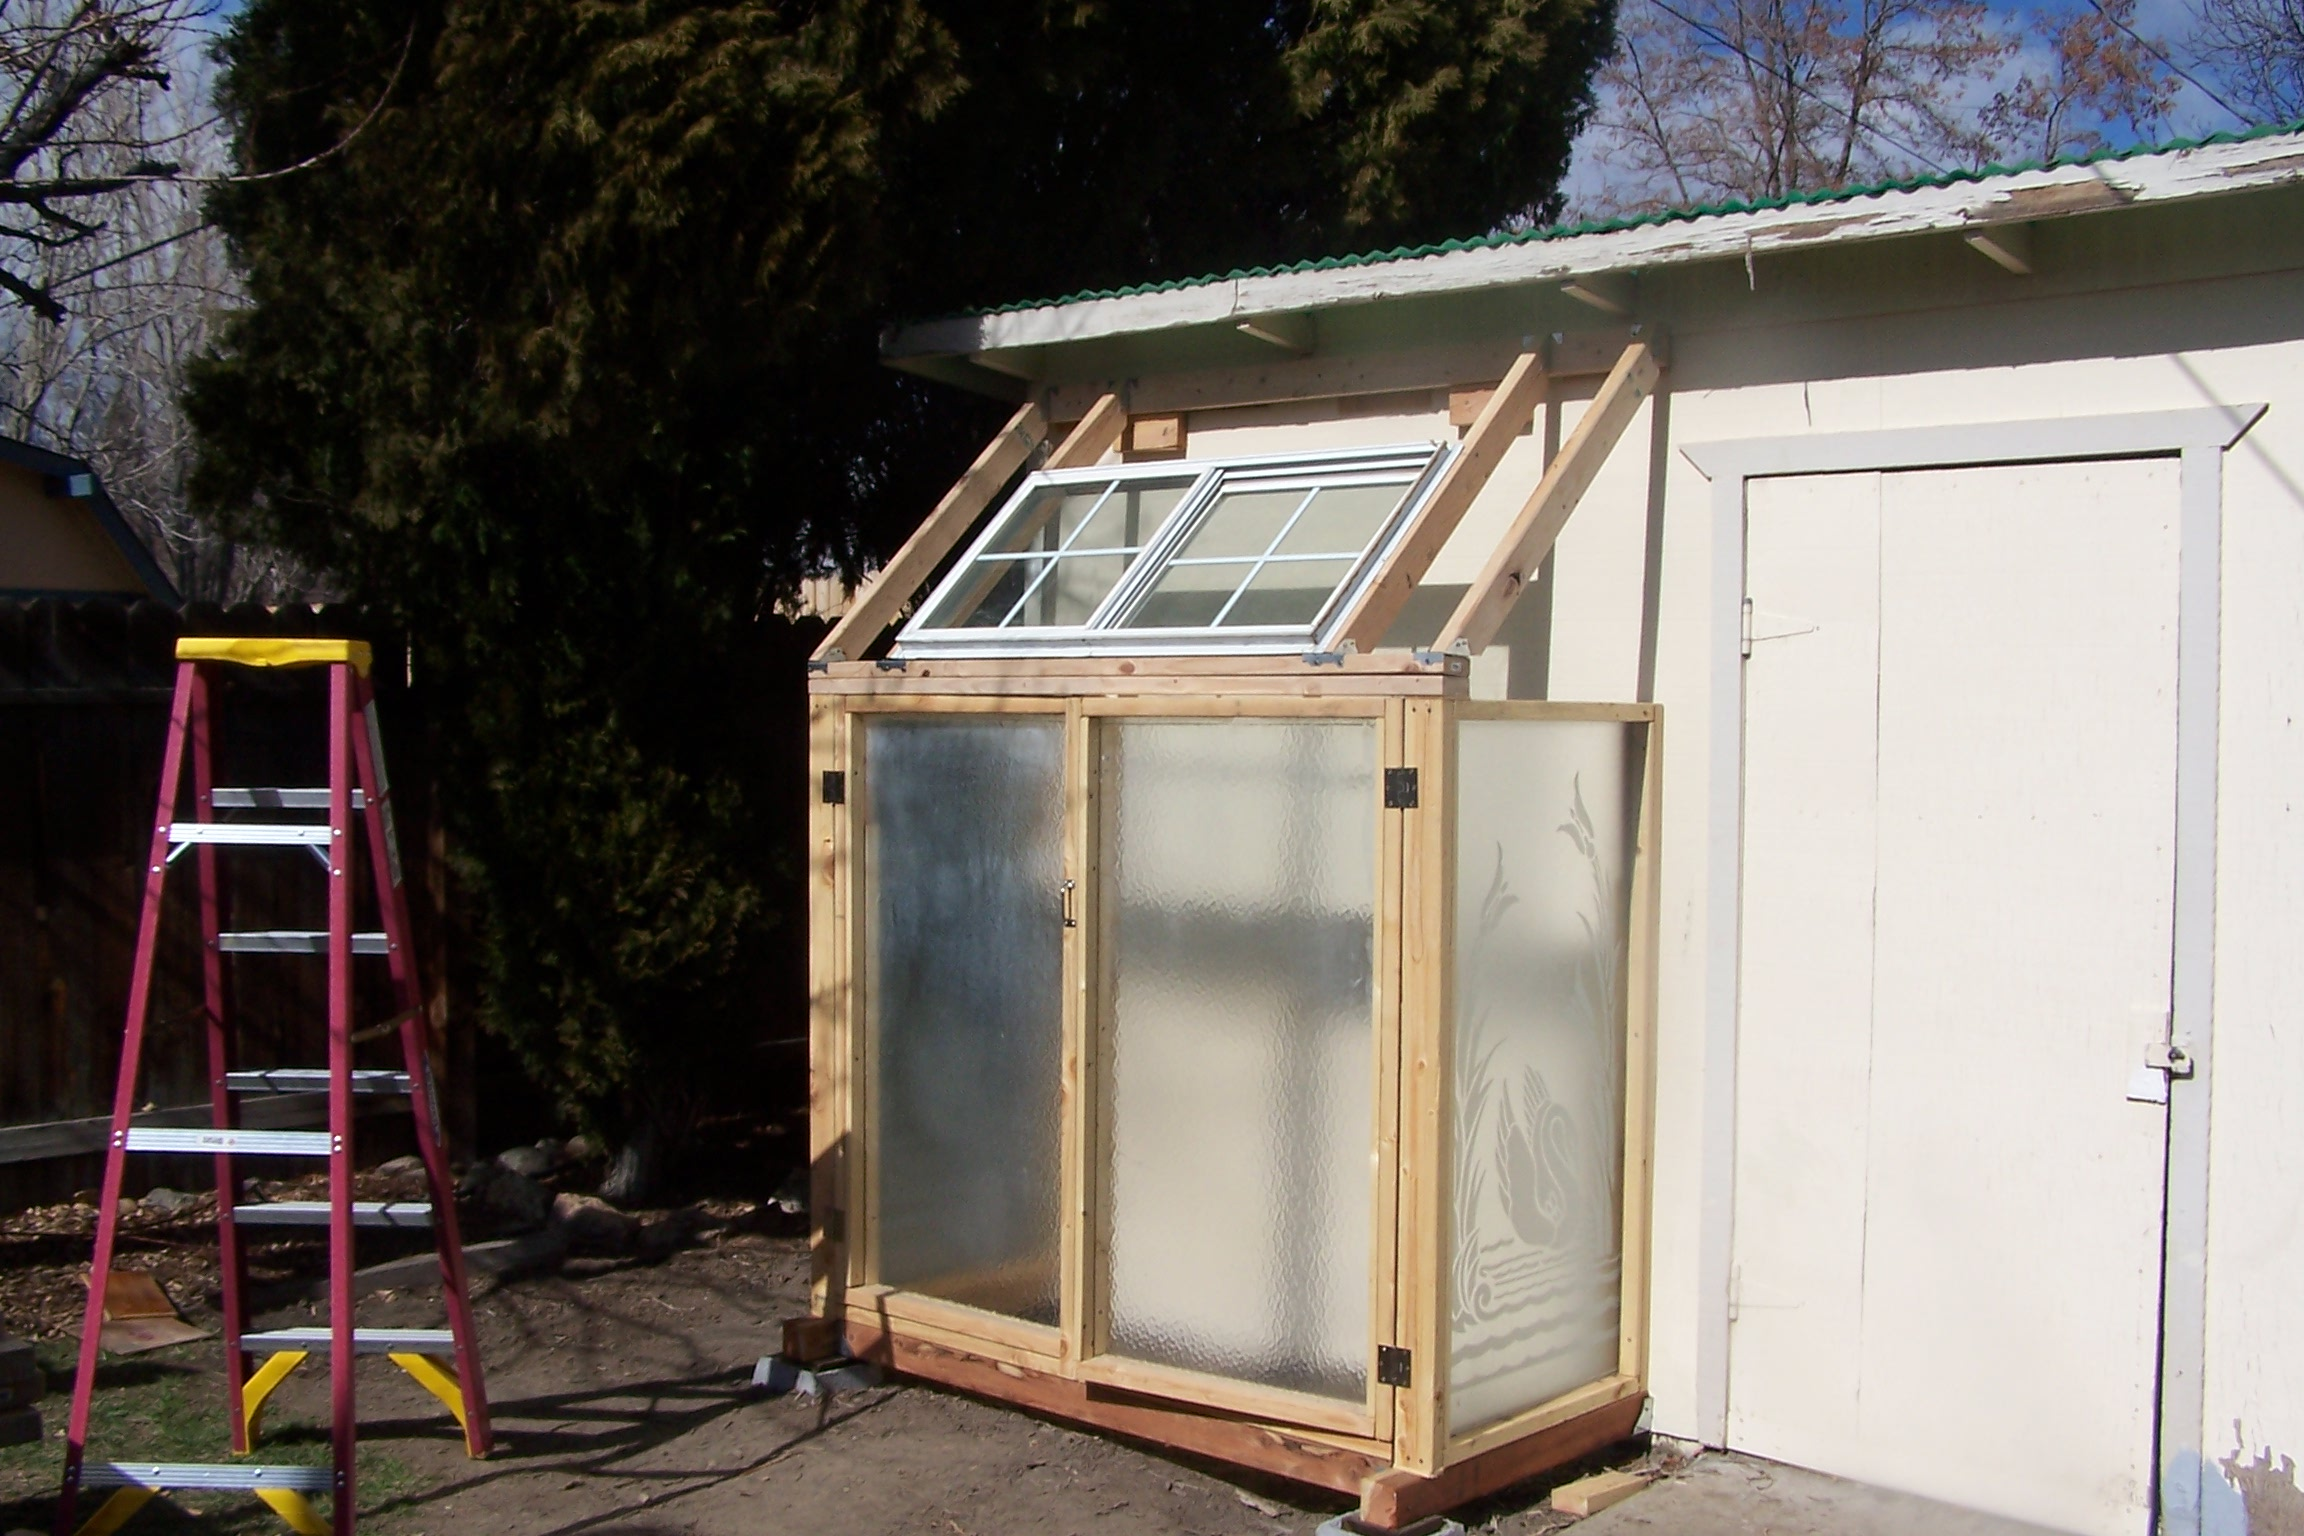 Building A Greenhouse From Recycled Shower Doors The